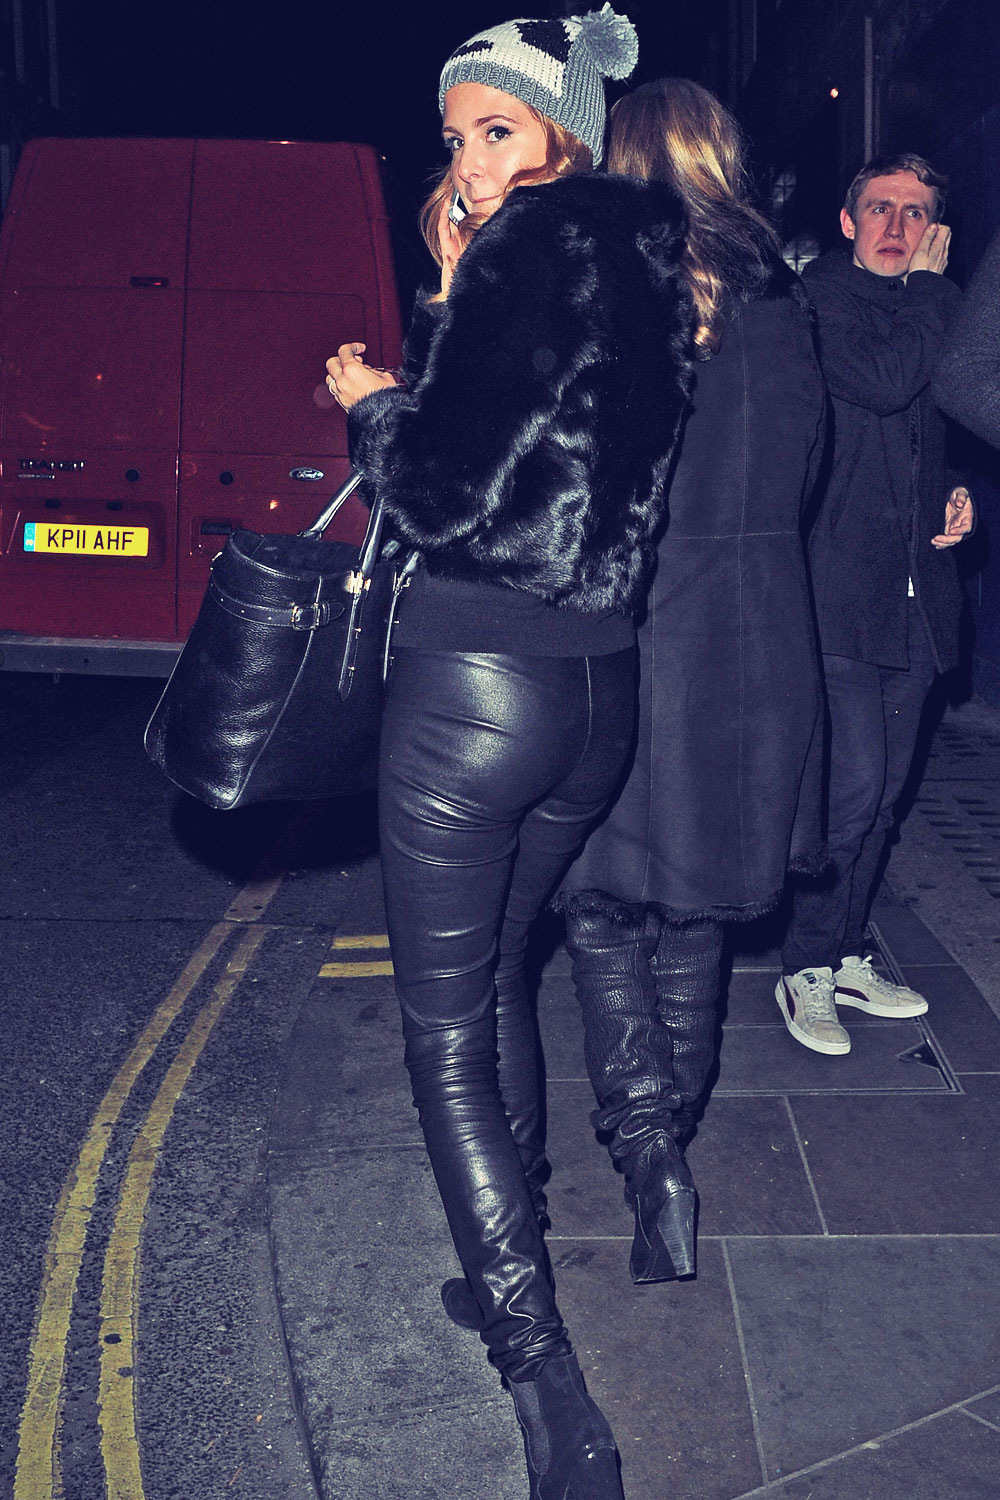 Millie Mackintosh out & about in London